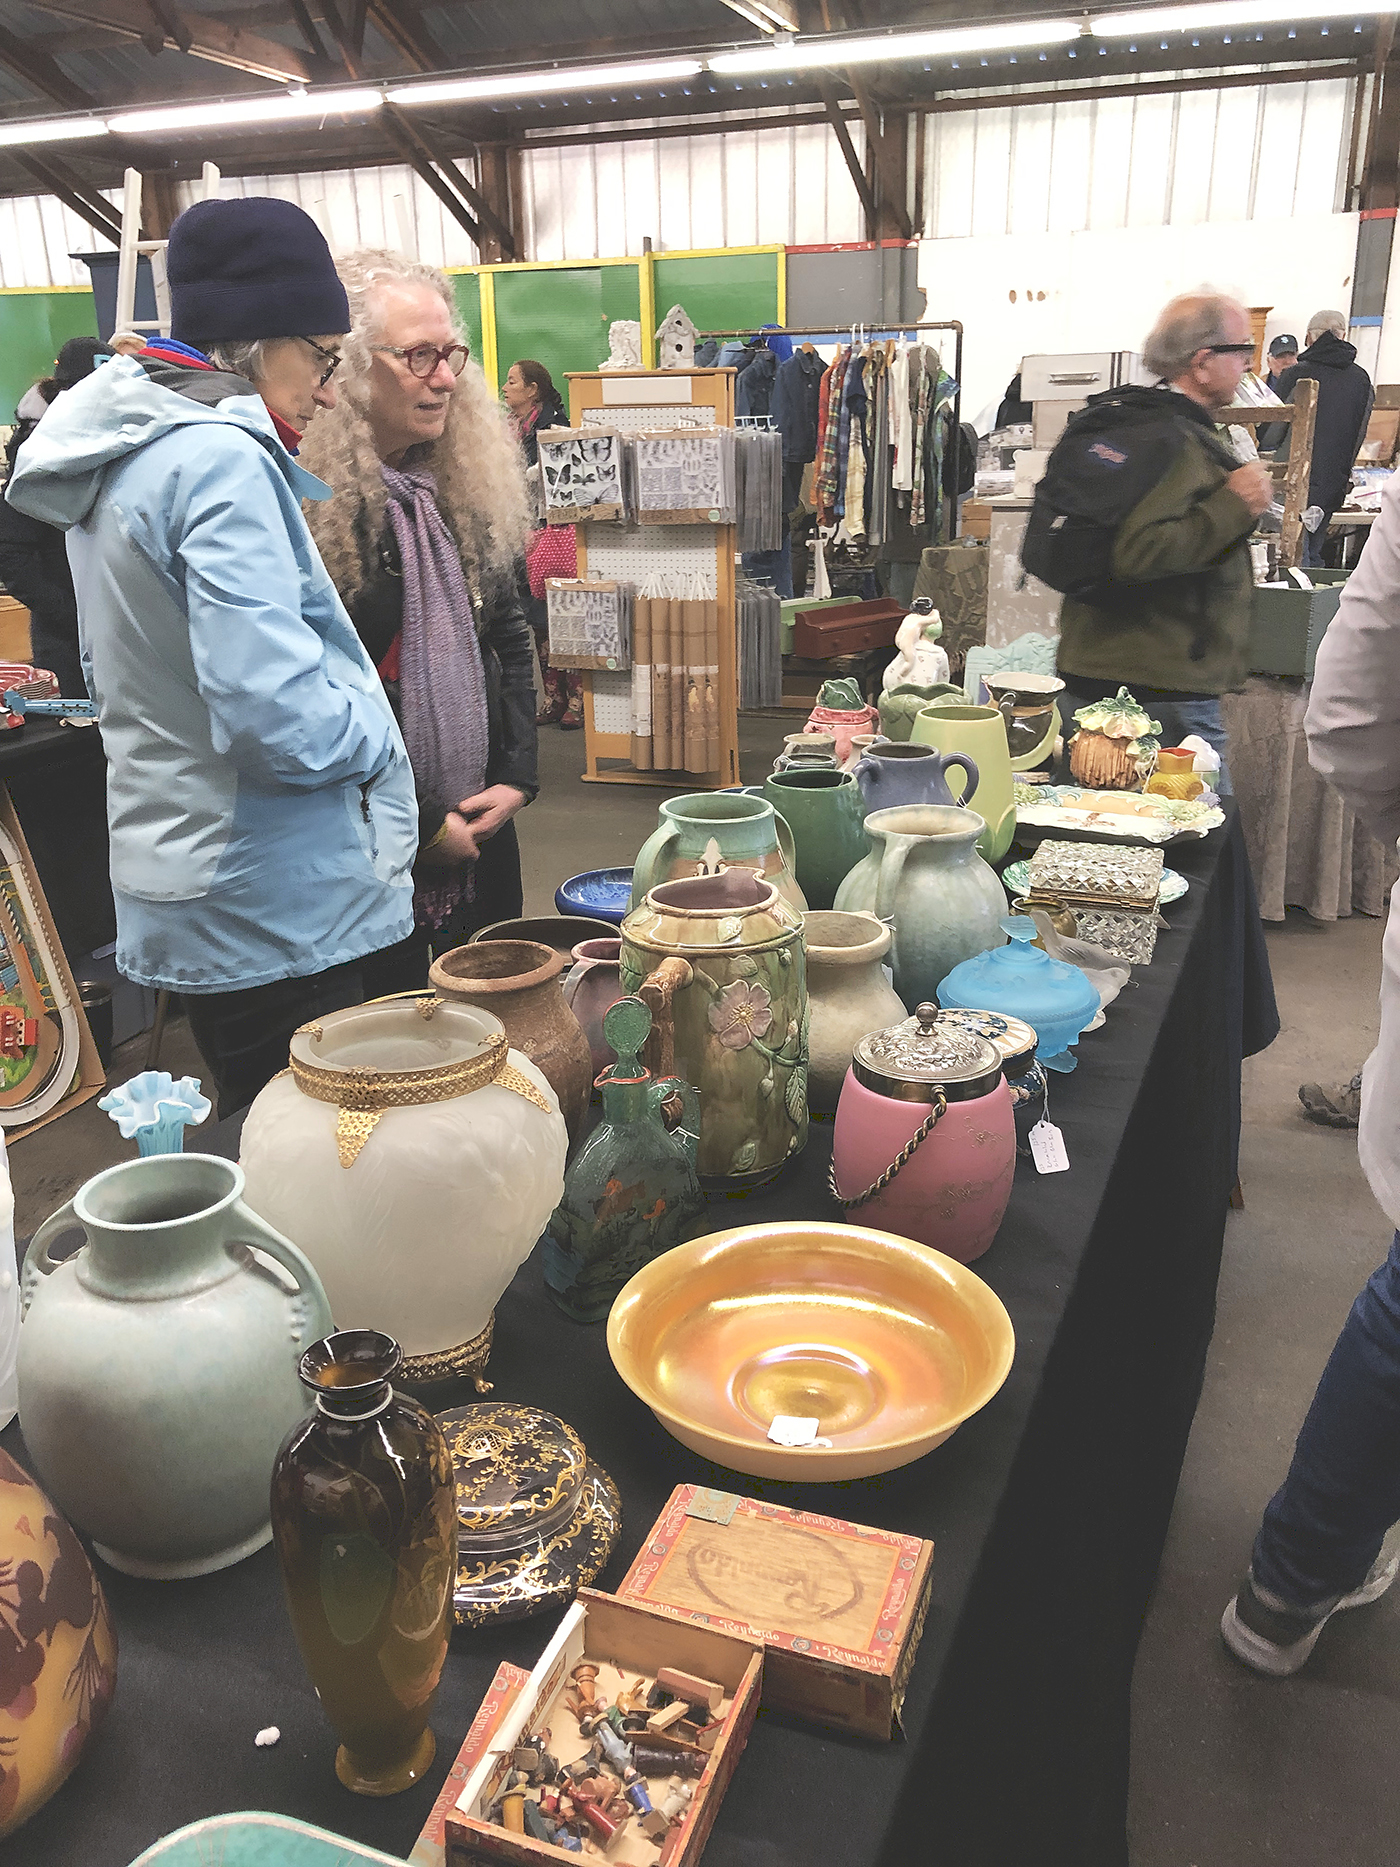 Art pottery, including Hampshire, Roseville and more, was offered by Ted Trembly, Milton, N.H., and several other dealers.